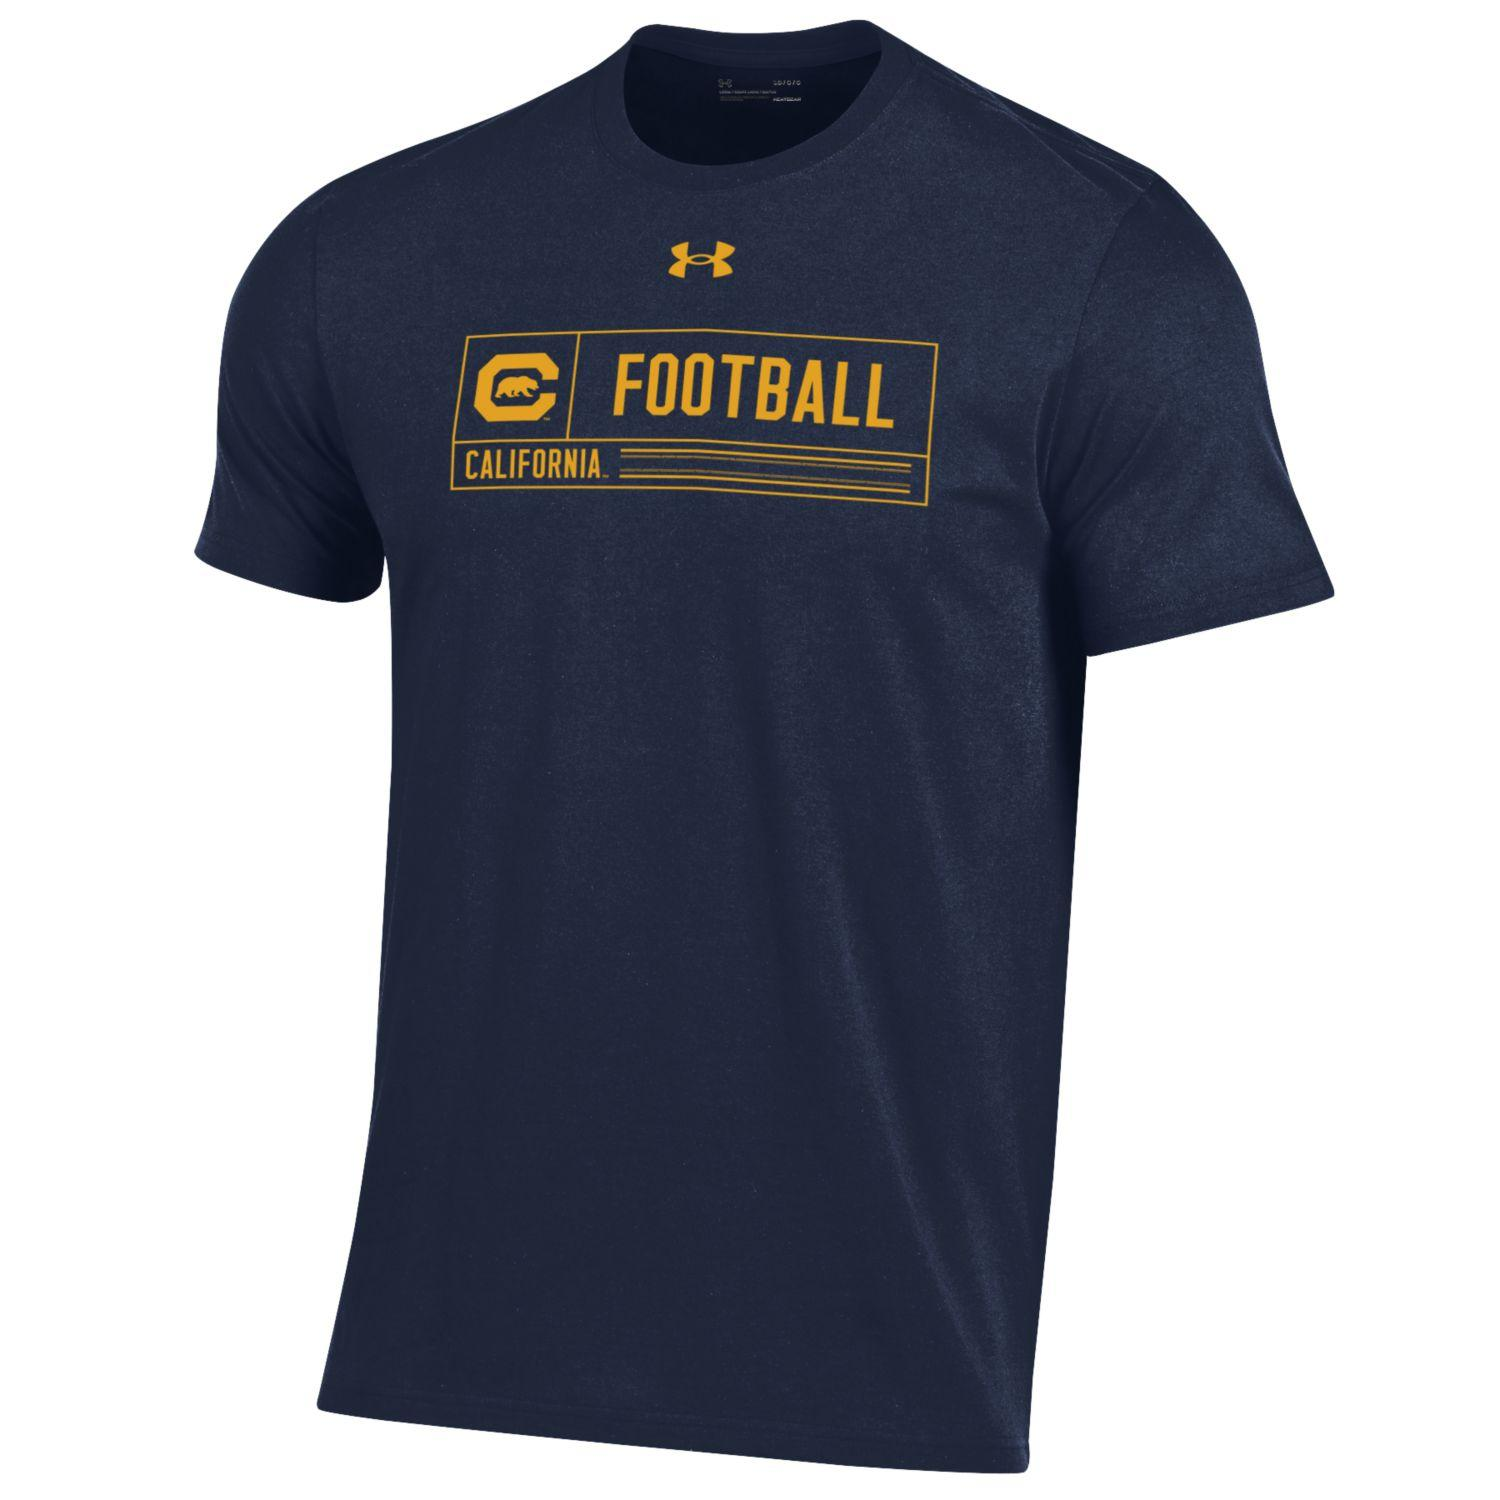 M Performance Cotton SS Football Tee